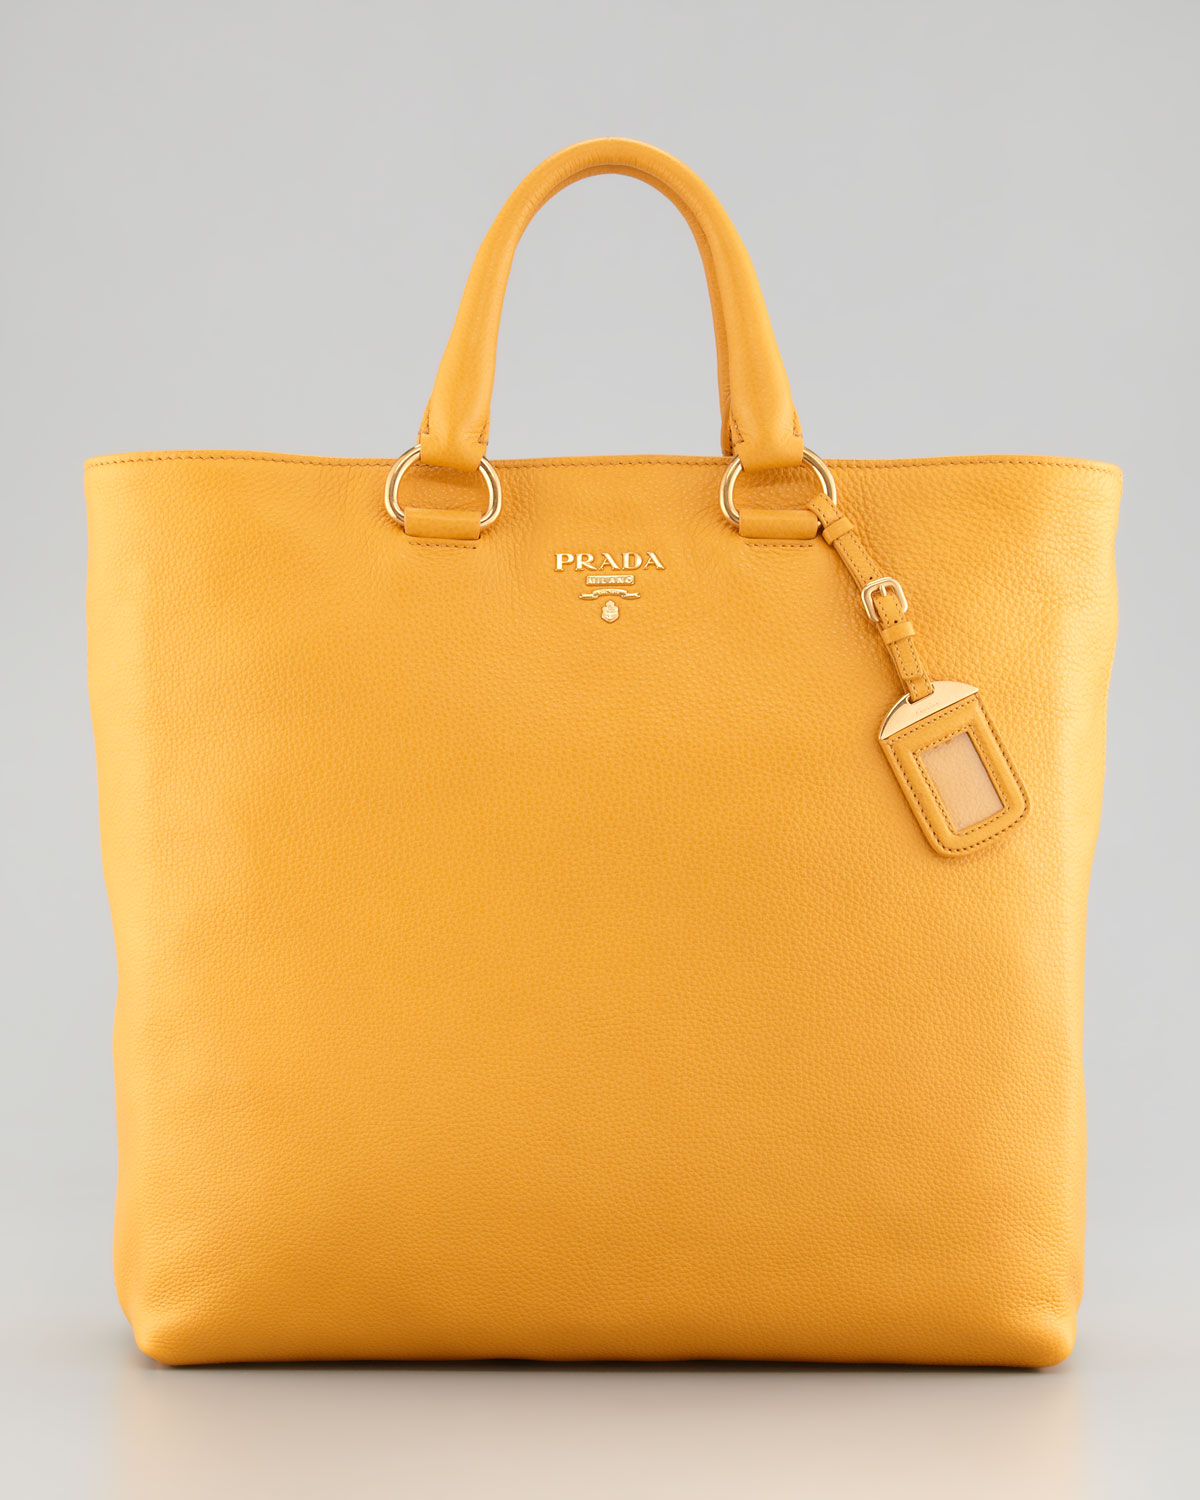 d1b481e56dc5 promo code for lyst prada daino pebbled leather tote bag in orange 02519  79556